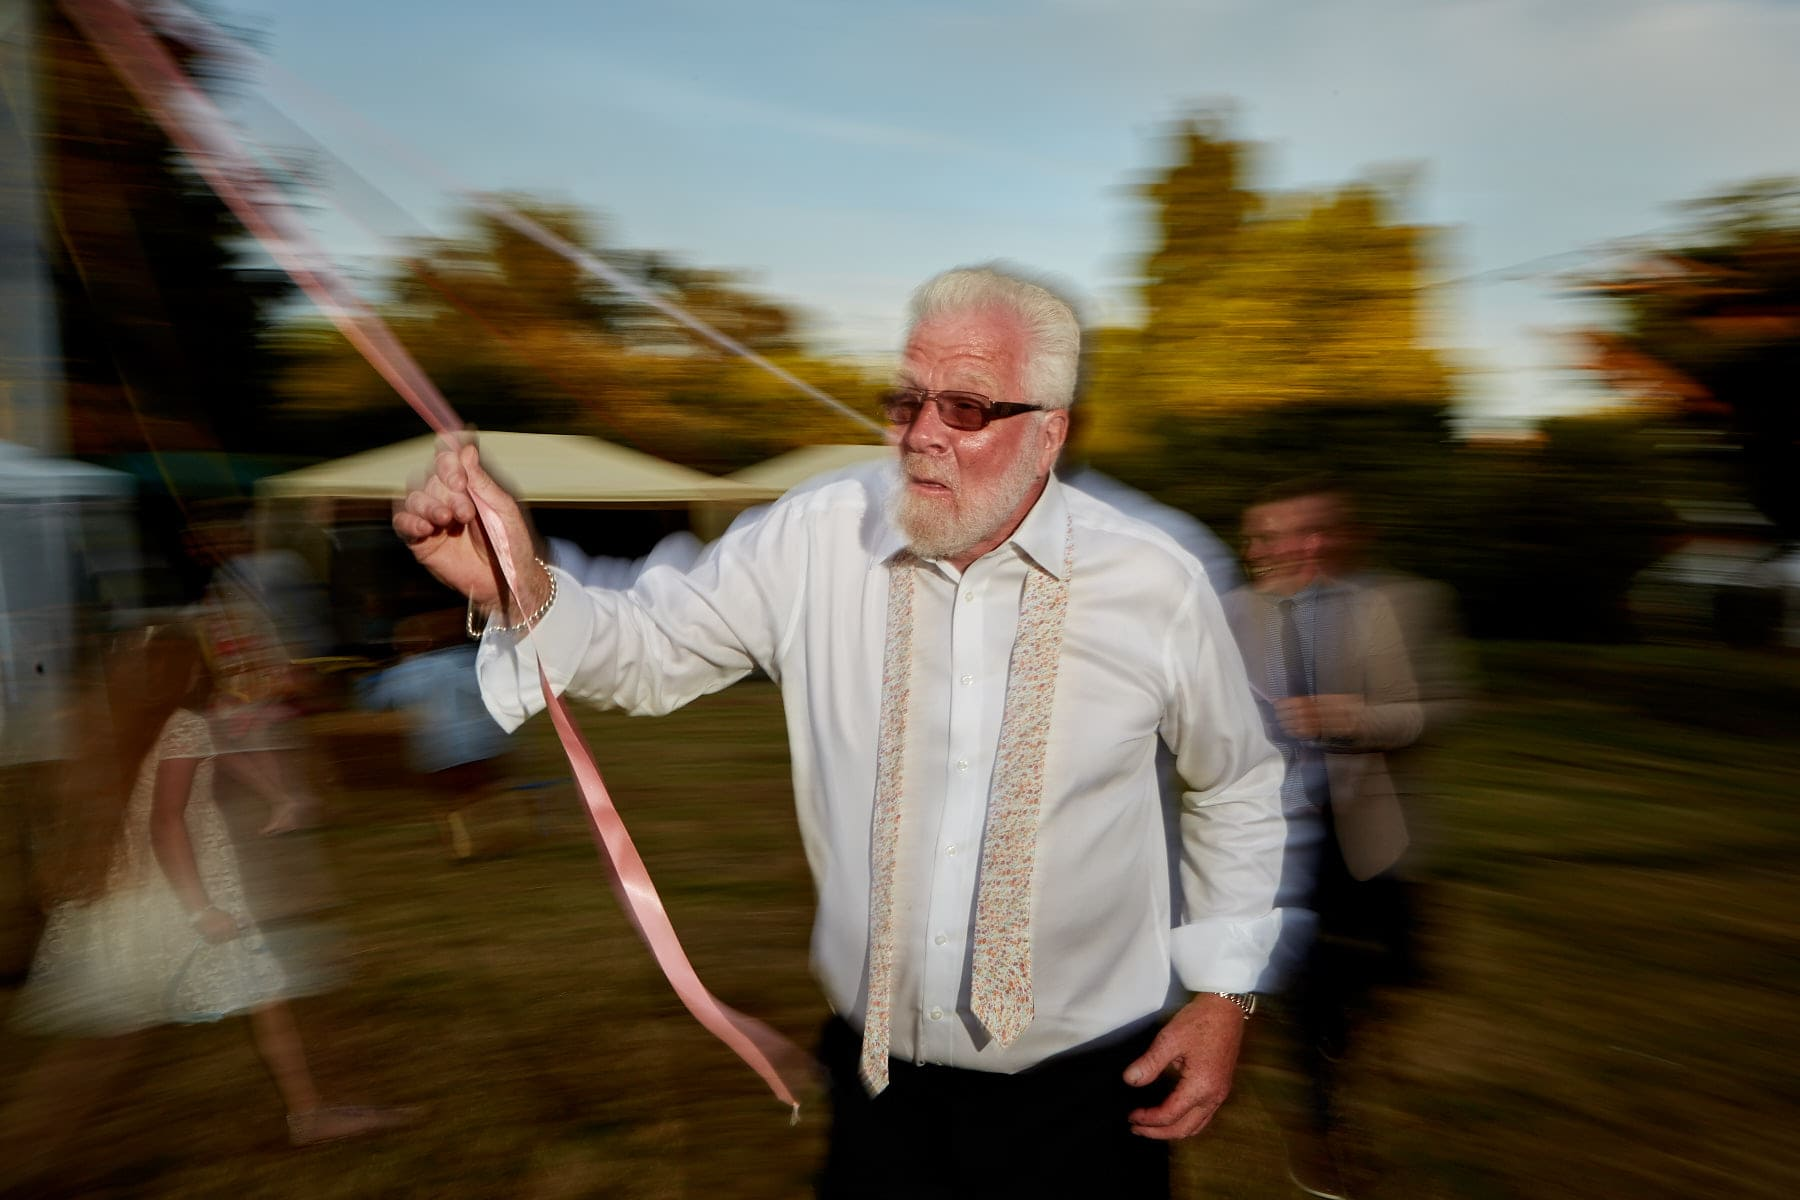 A father enjoying the maypole at his daughters wedding.